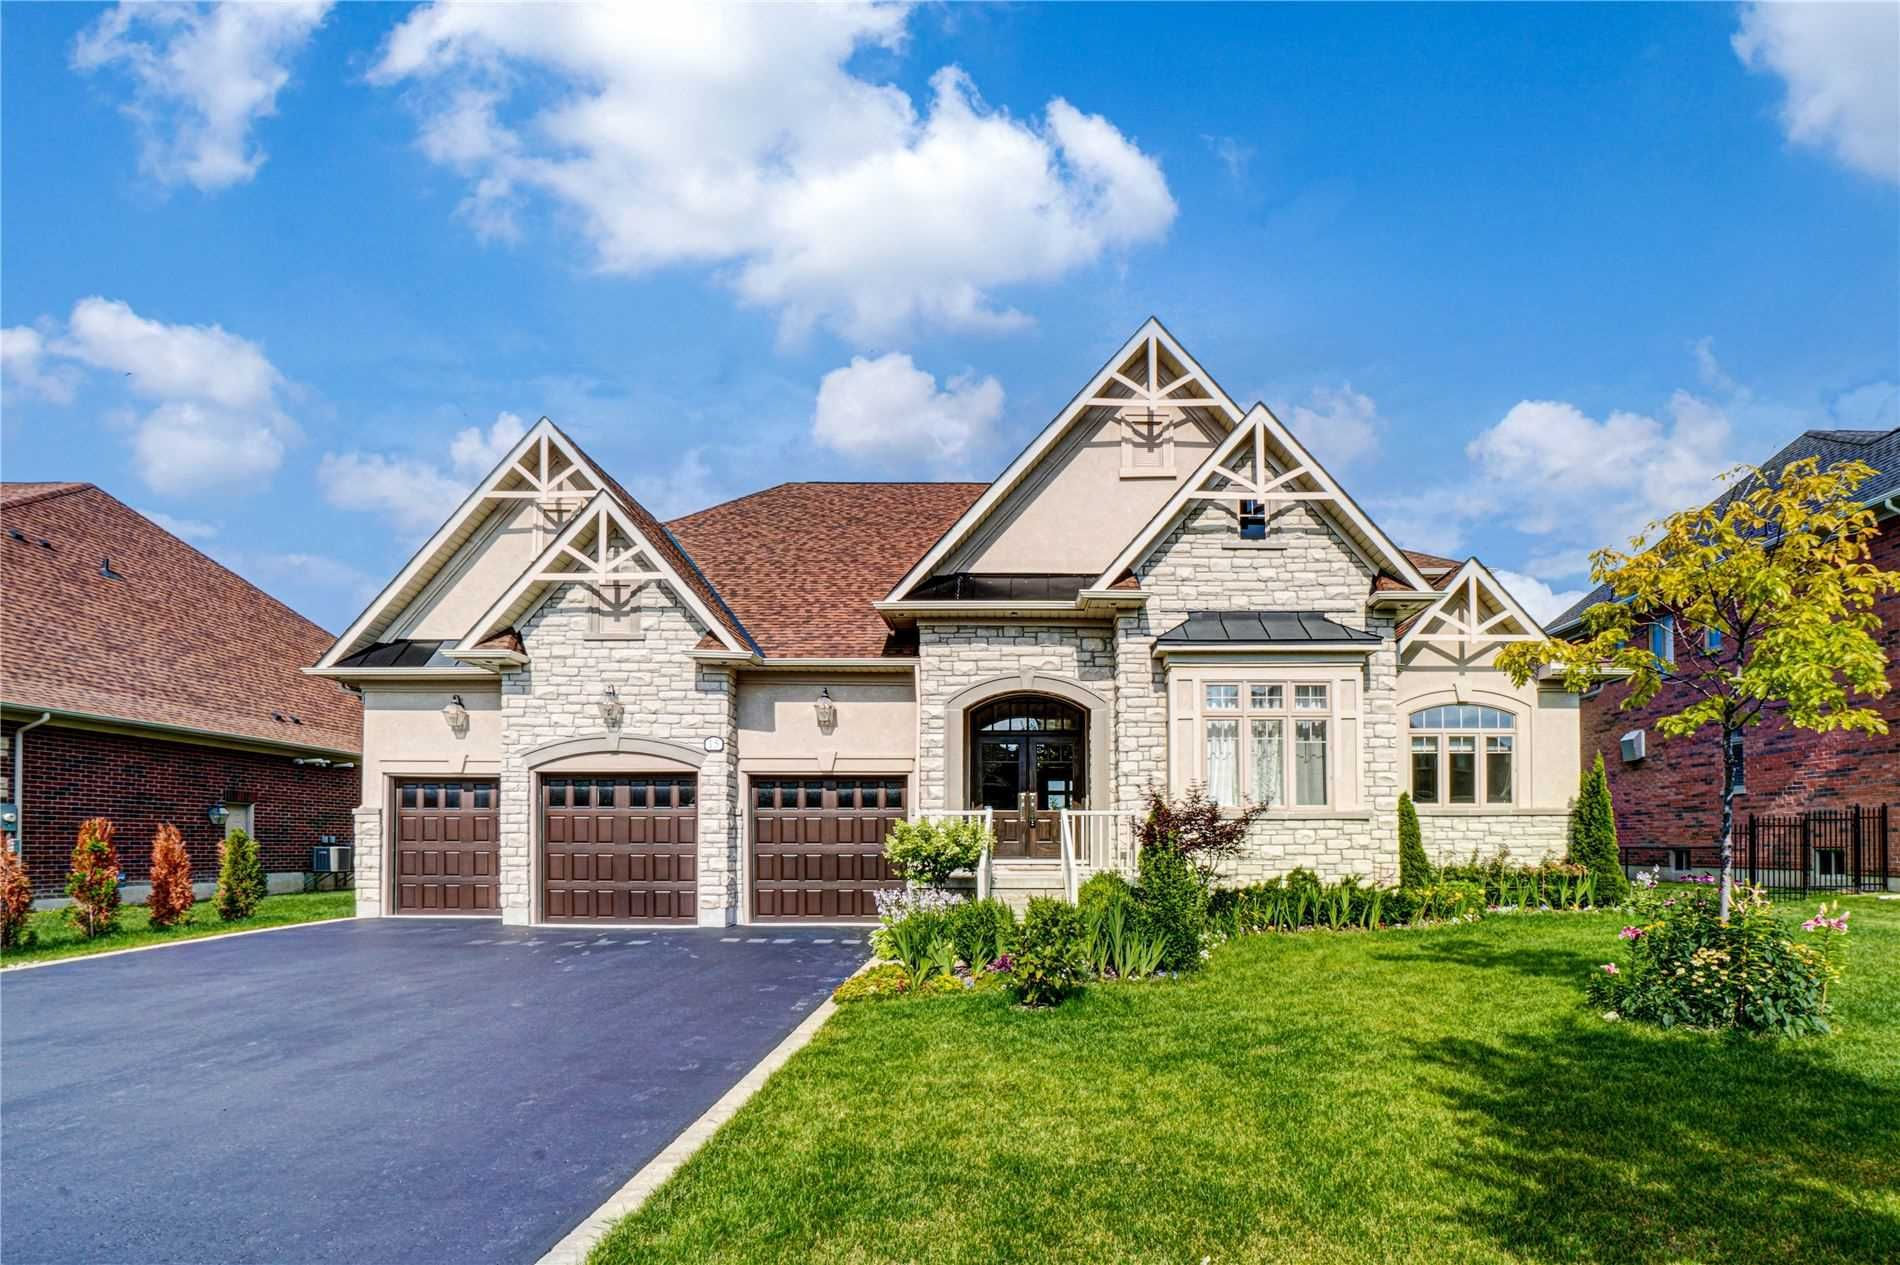 Main Photo: 15 Country Club Cres: Uxbridge Freehold for sale : MLS®# N5376947